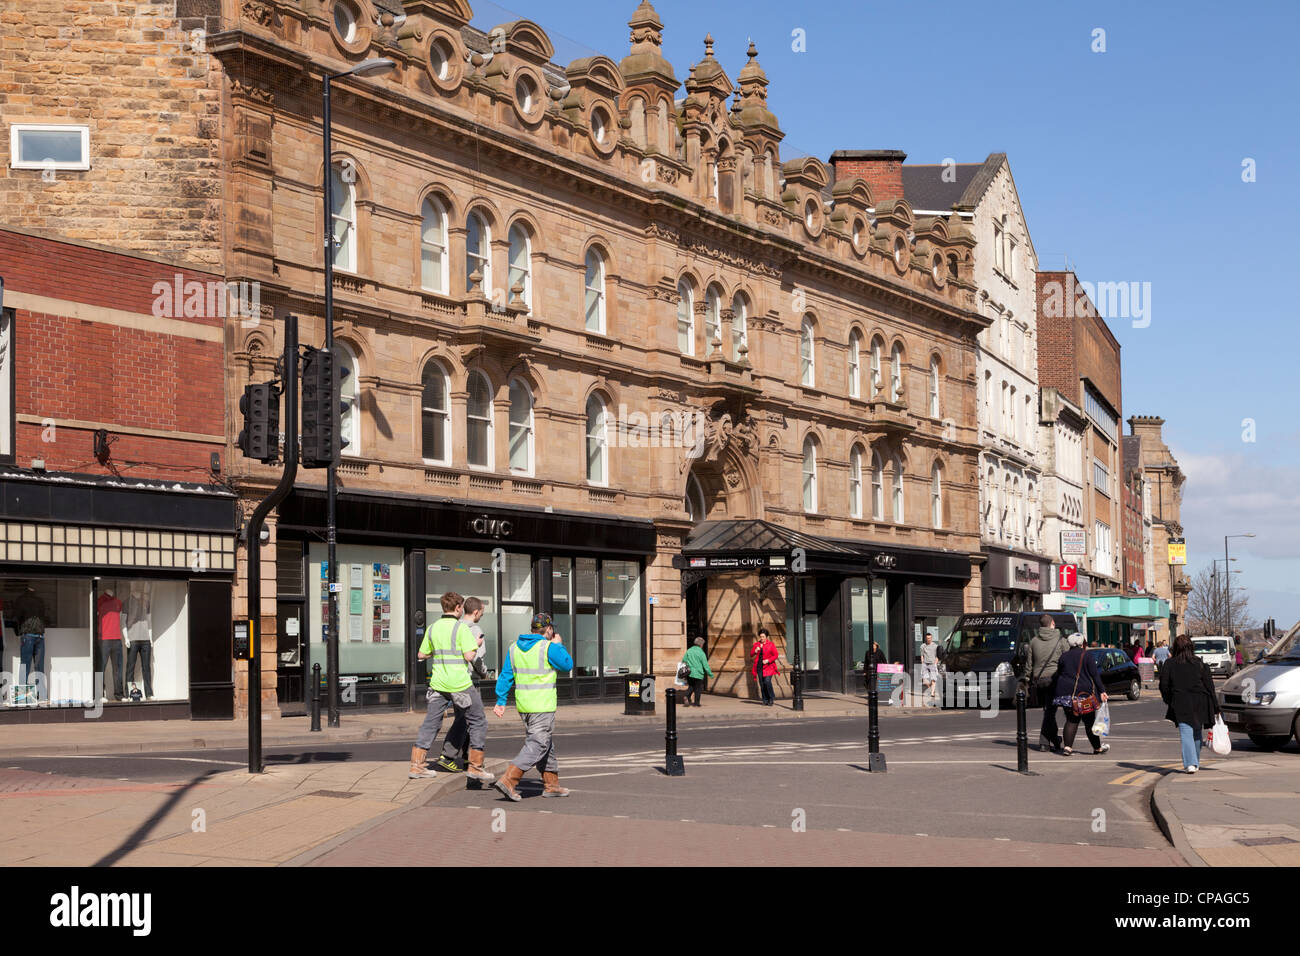 The Civic Centre, an old sandstone building in Barnsley, South Yorkshire, people walking by. - Stock Image